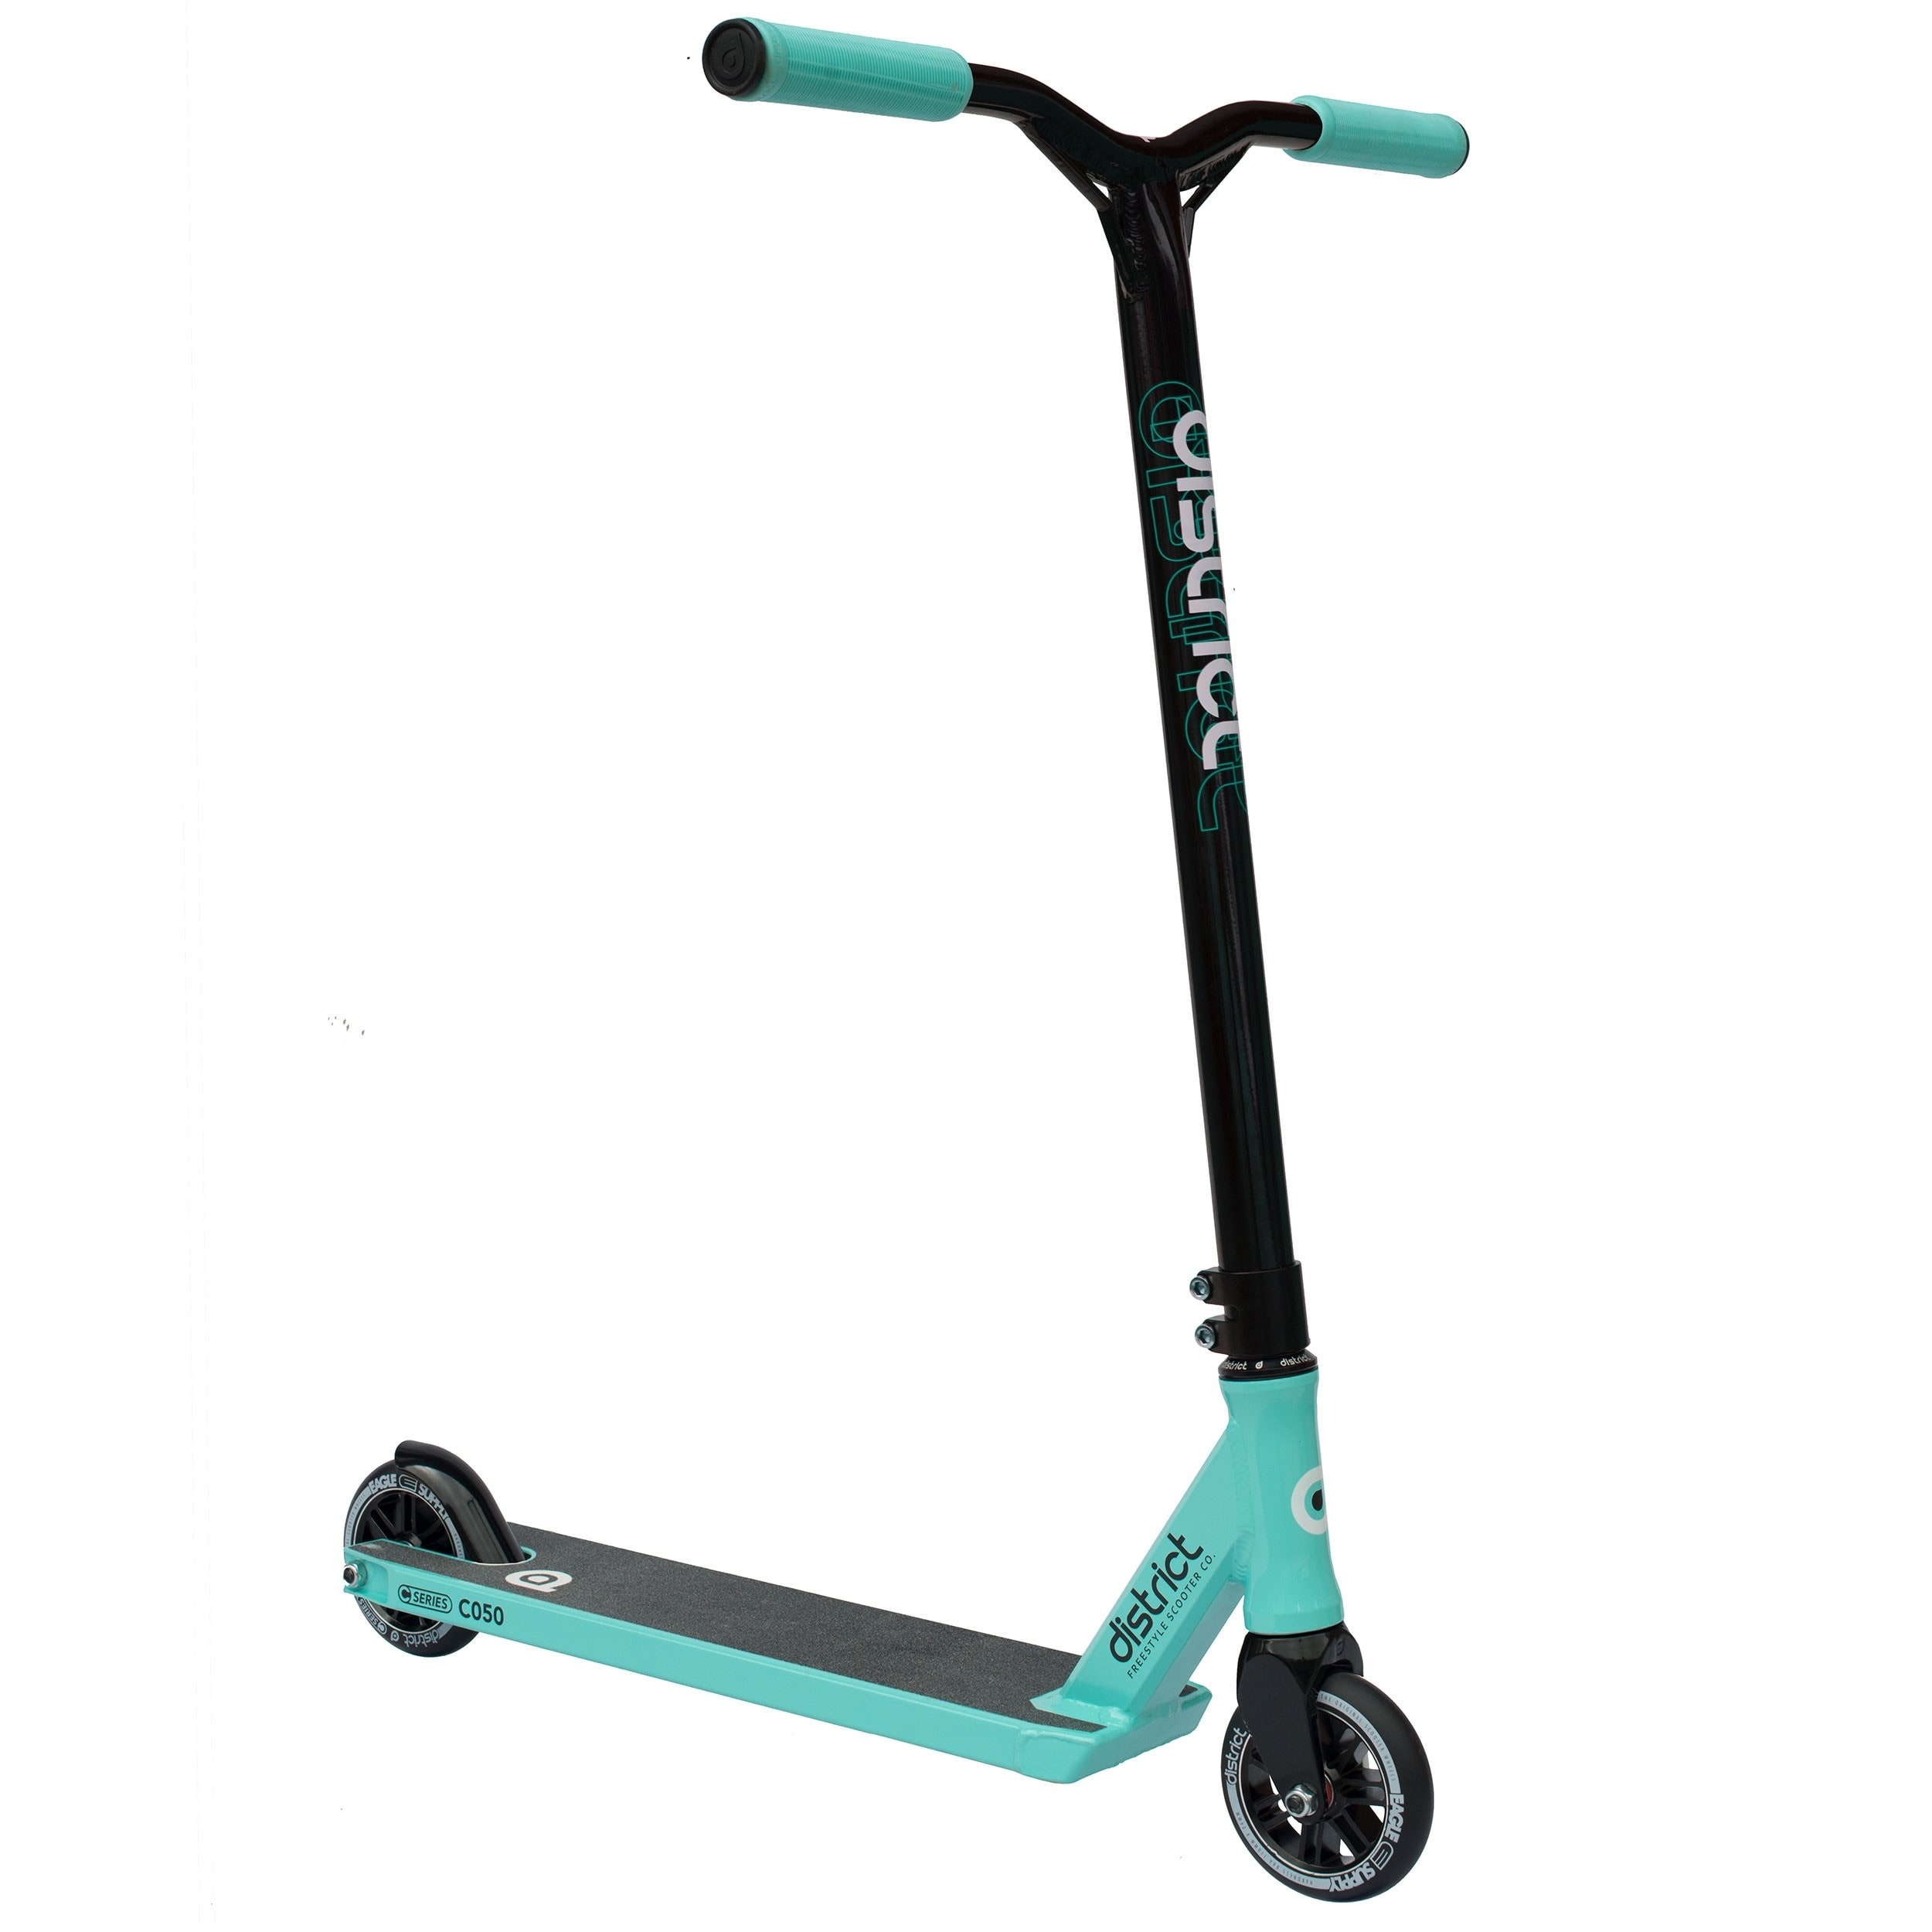 Image of District 2017 C-Series C050 Complete Scooter - Mint/Black